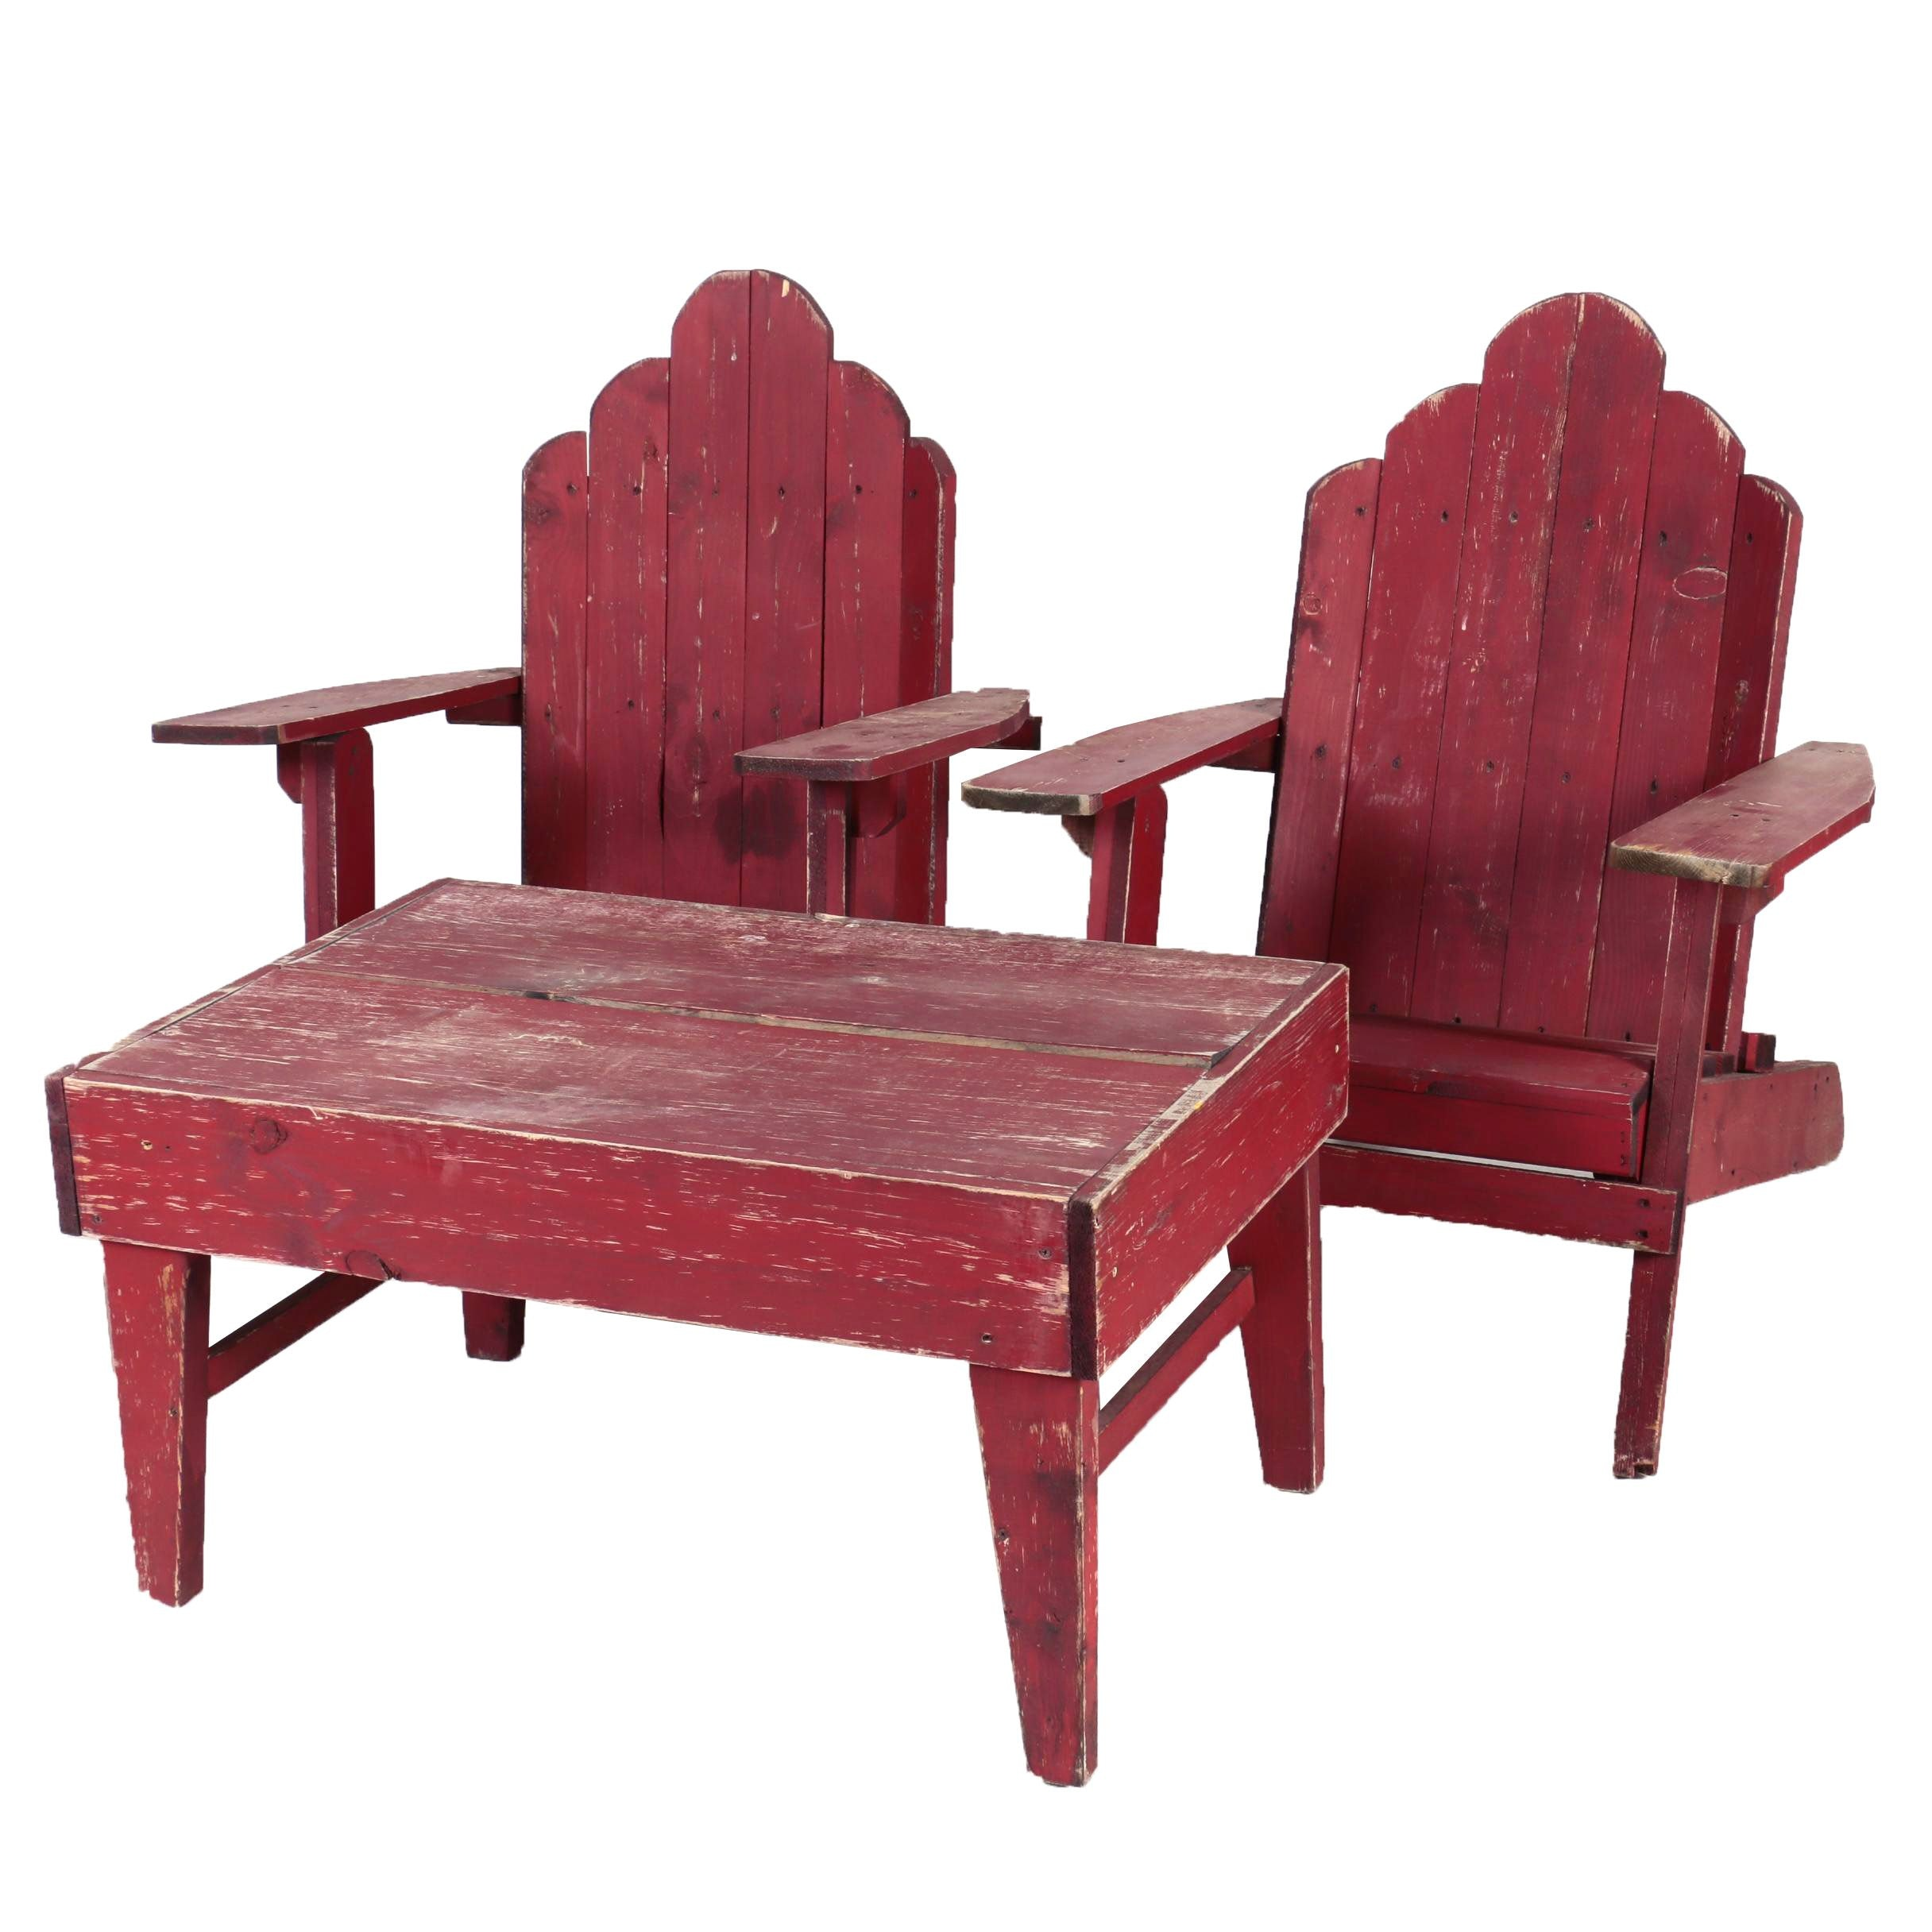 Vintage Adirondack Style Three-Piece Patio Furniture Set in Red Paint